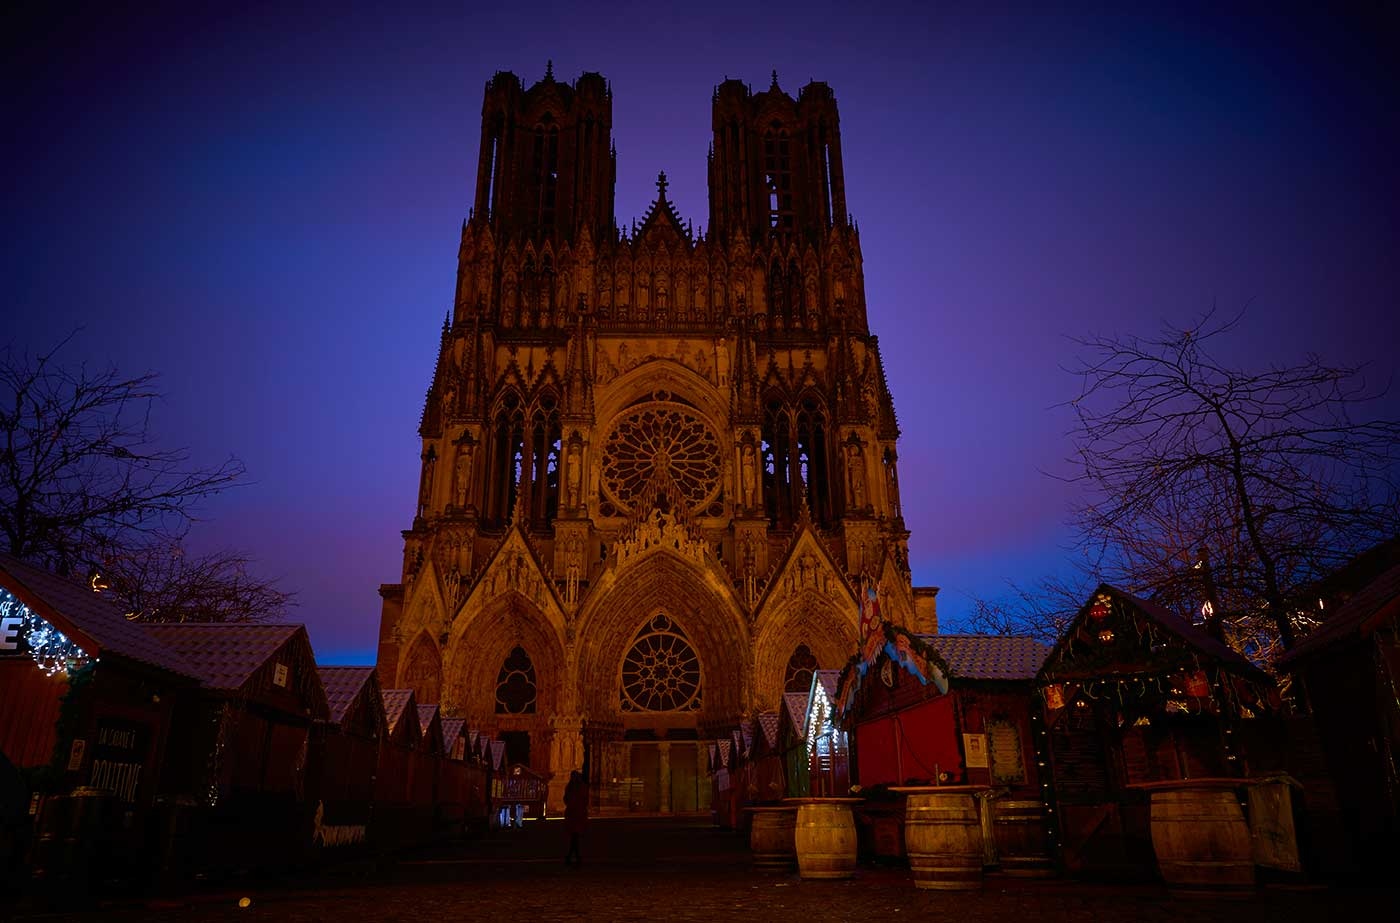 La Cathedrale de Reims - Laurent Rodriguez